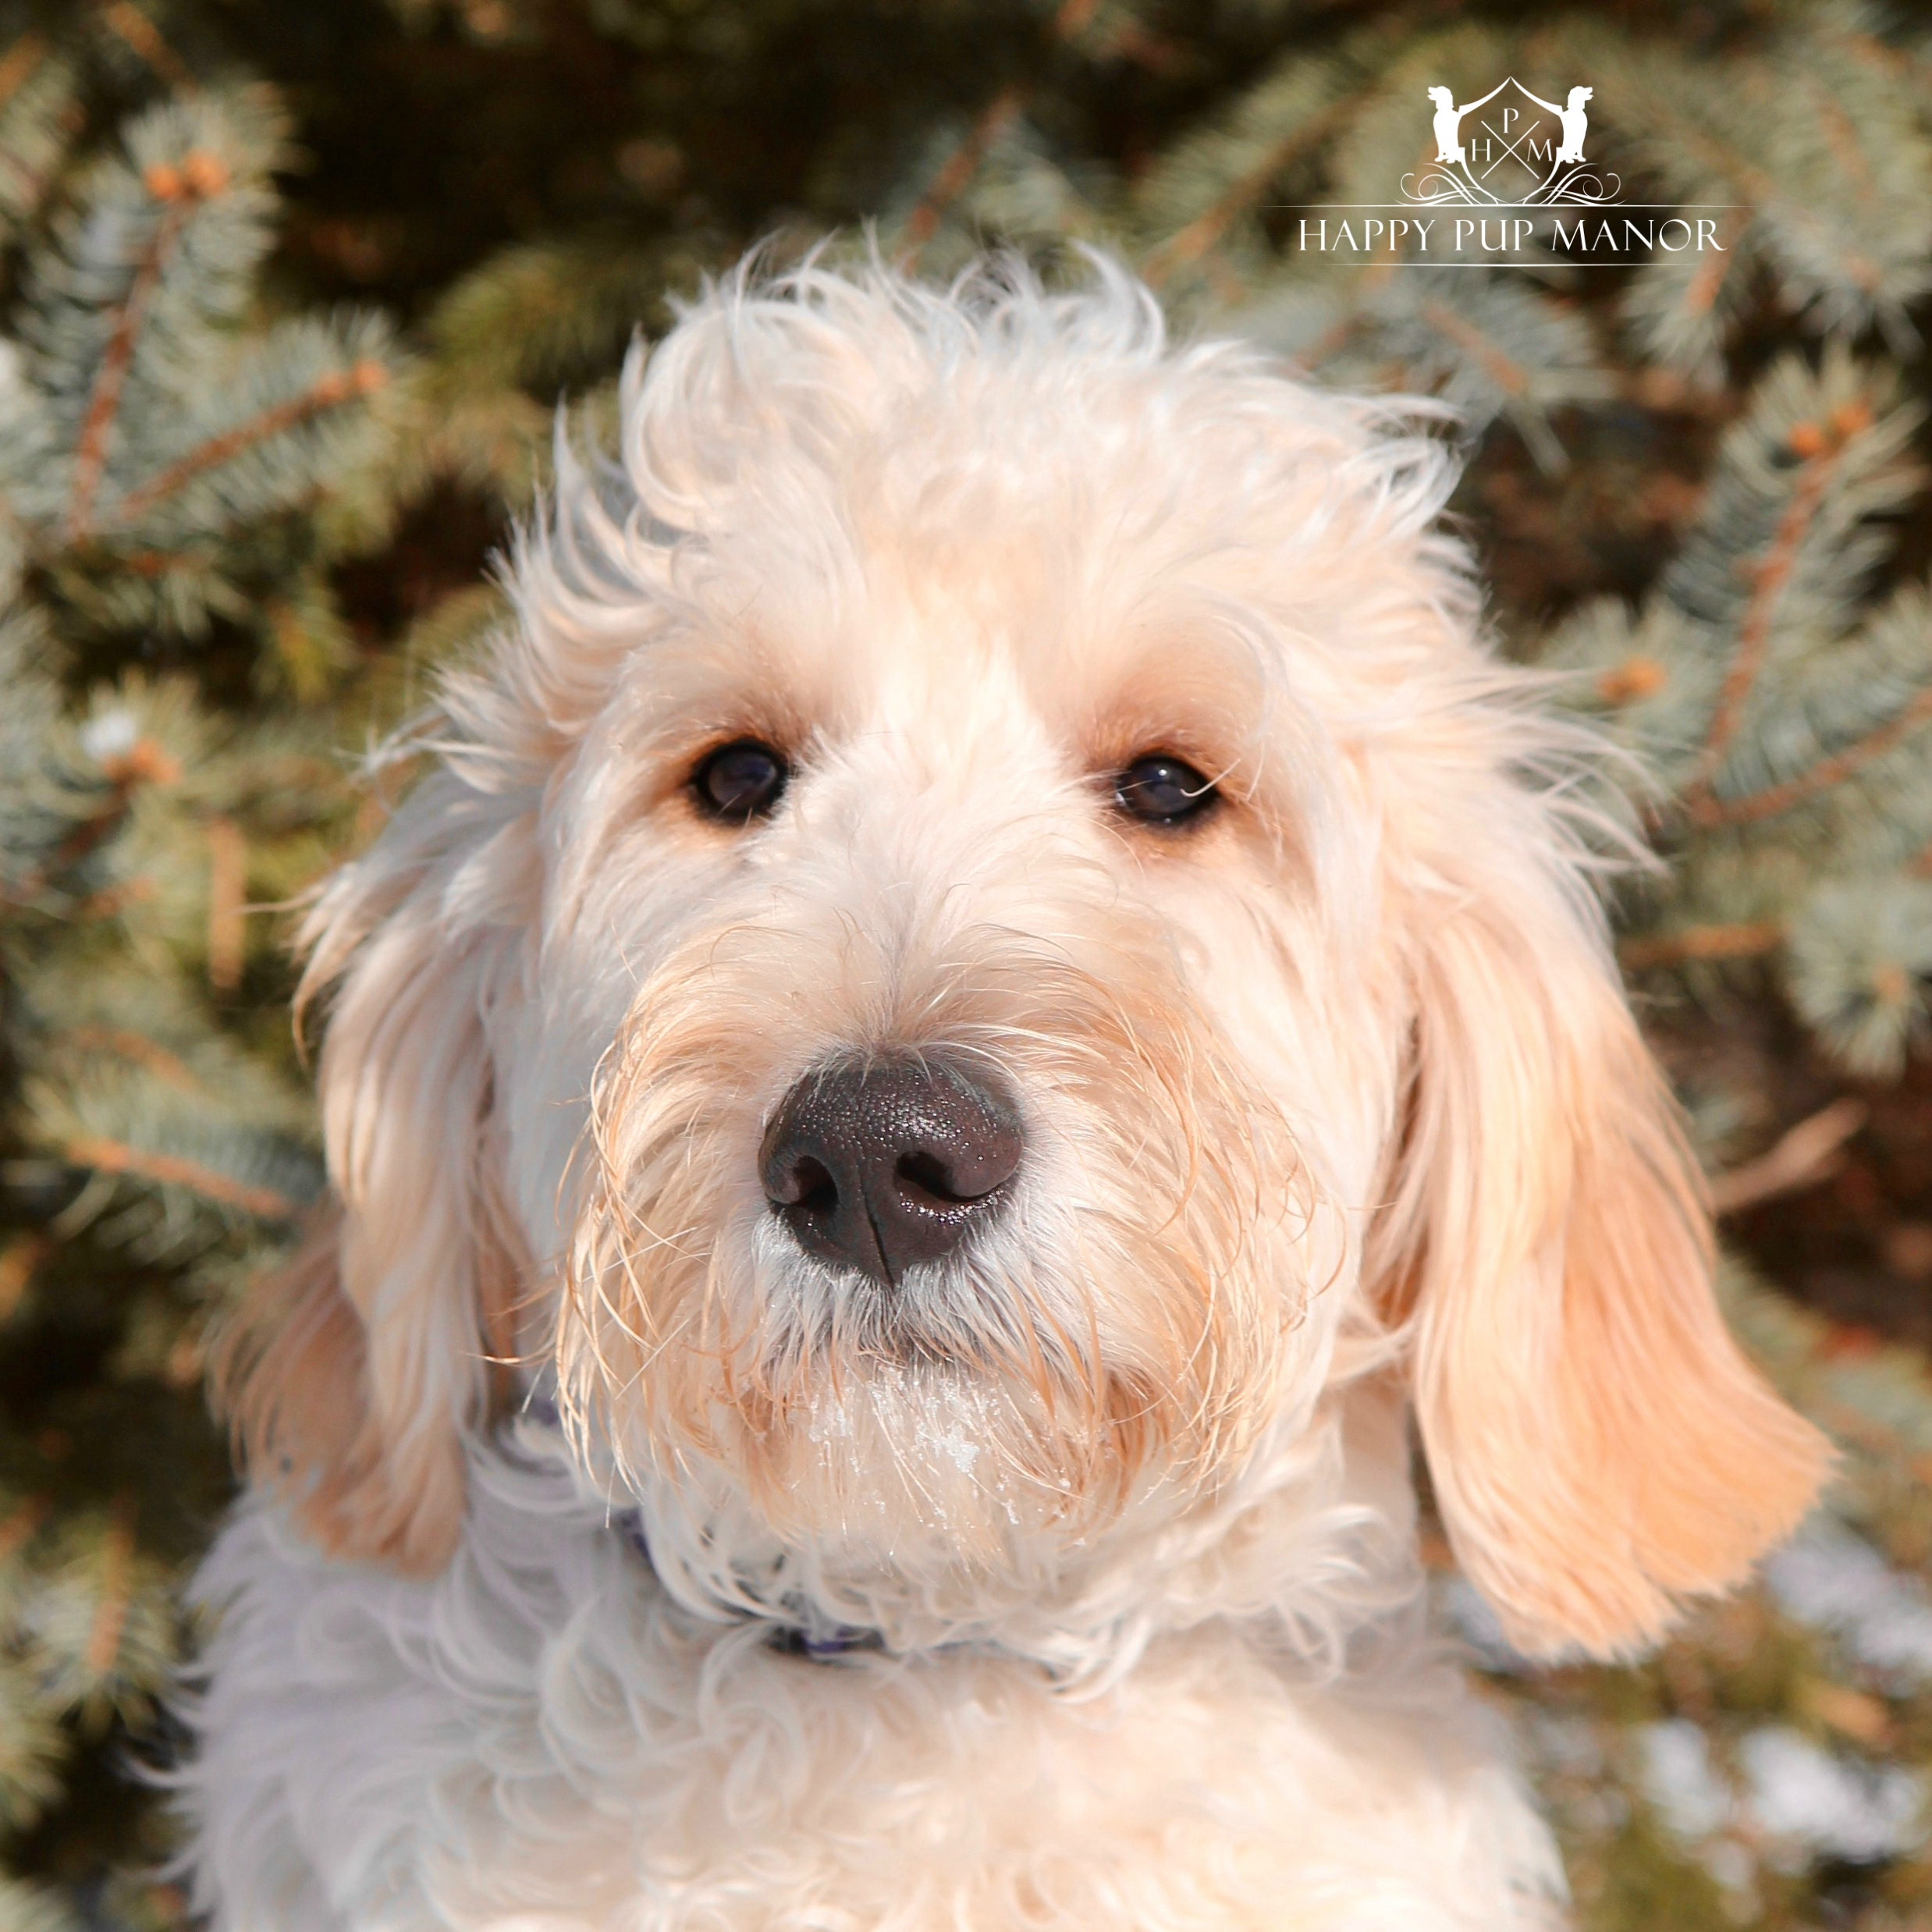 Rizzo the Goldendoodle